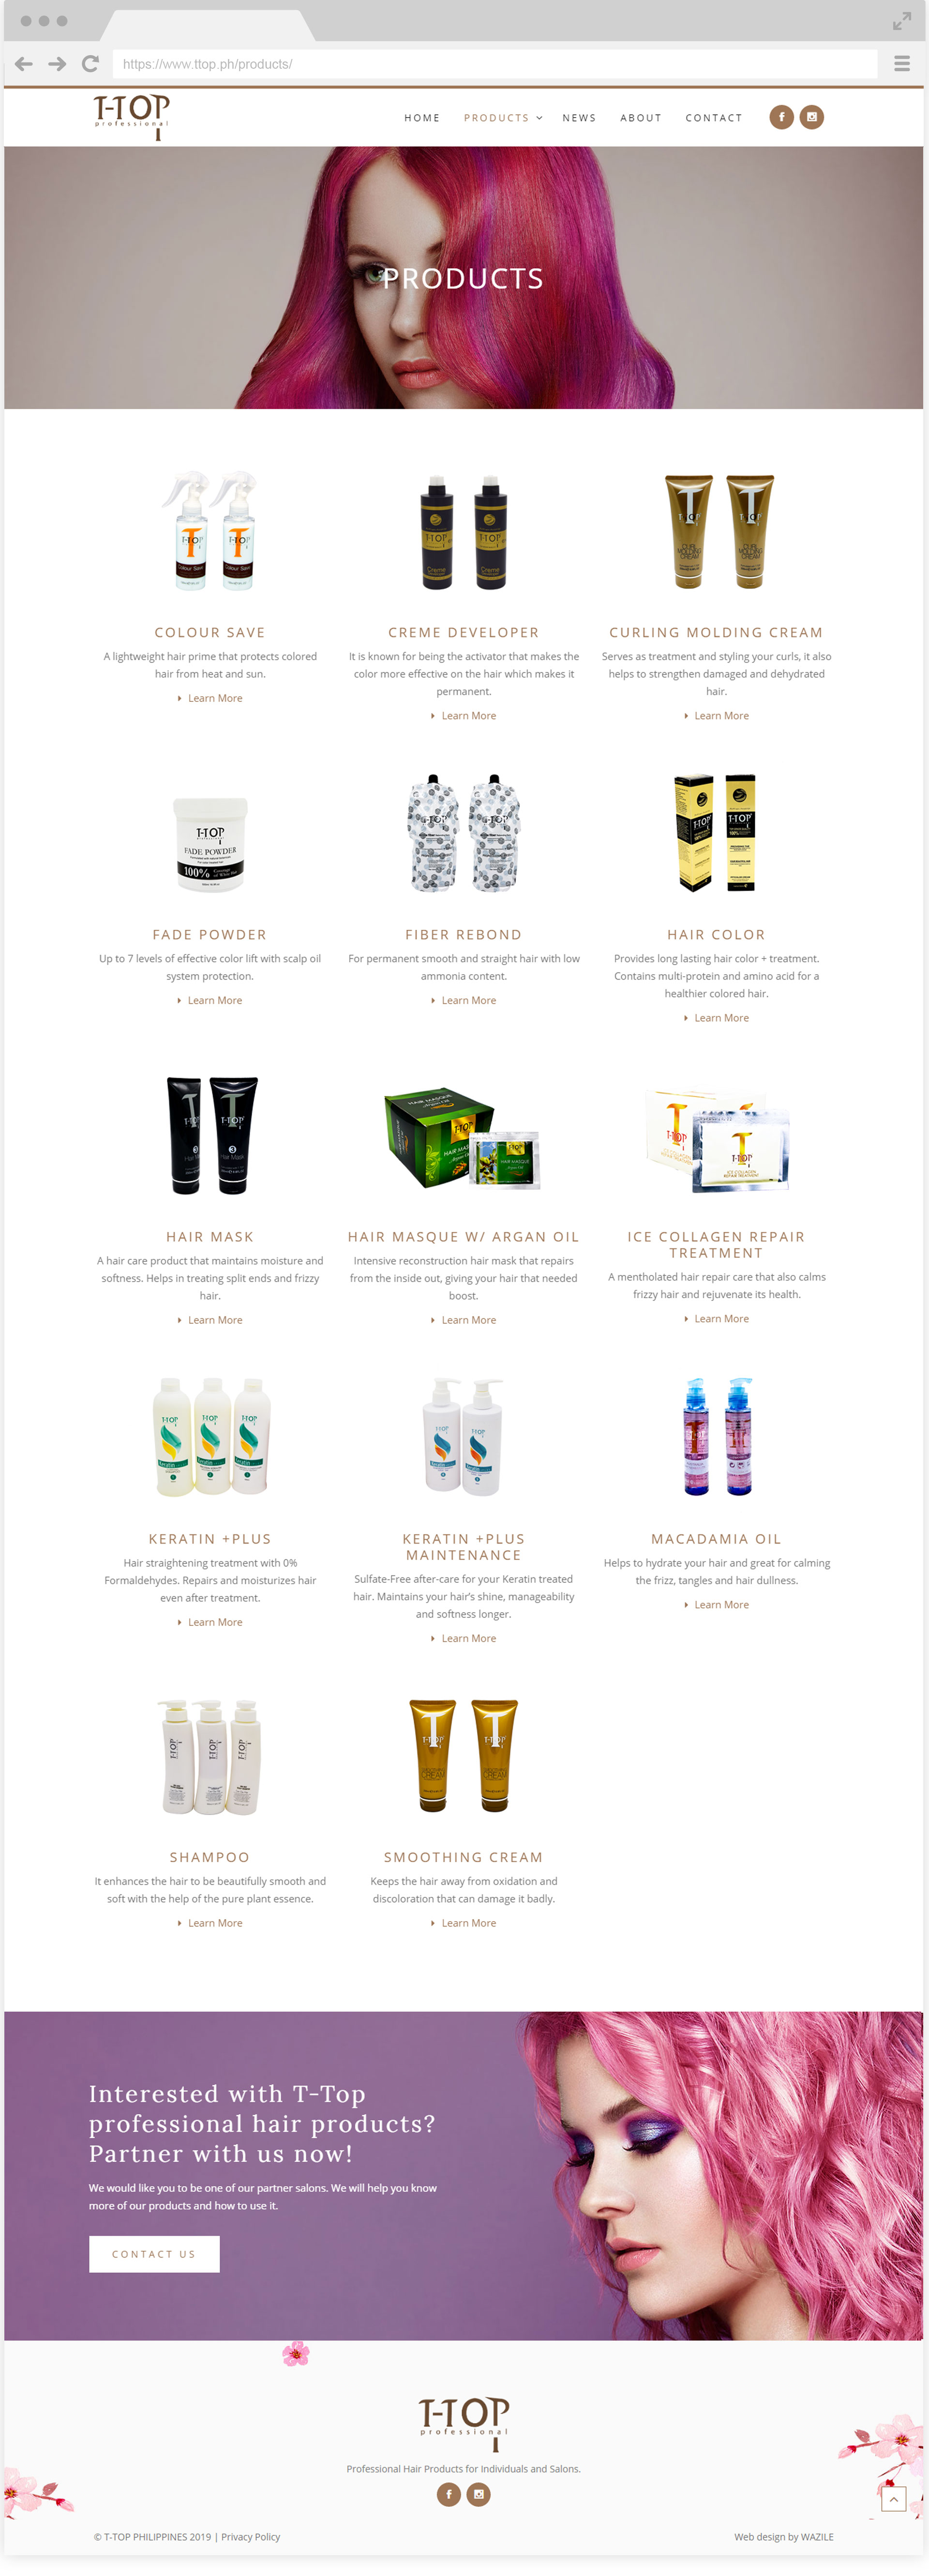 T-top Philippines Products